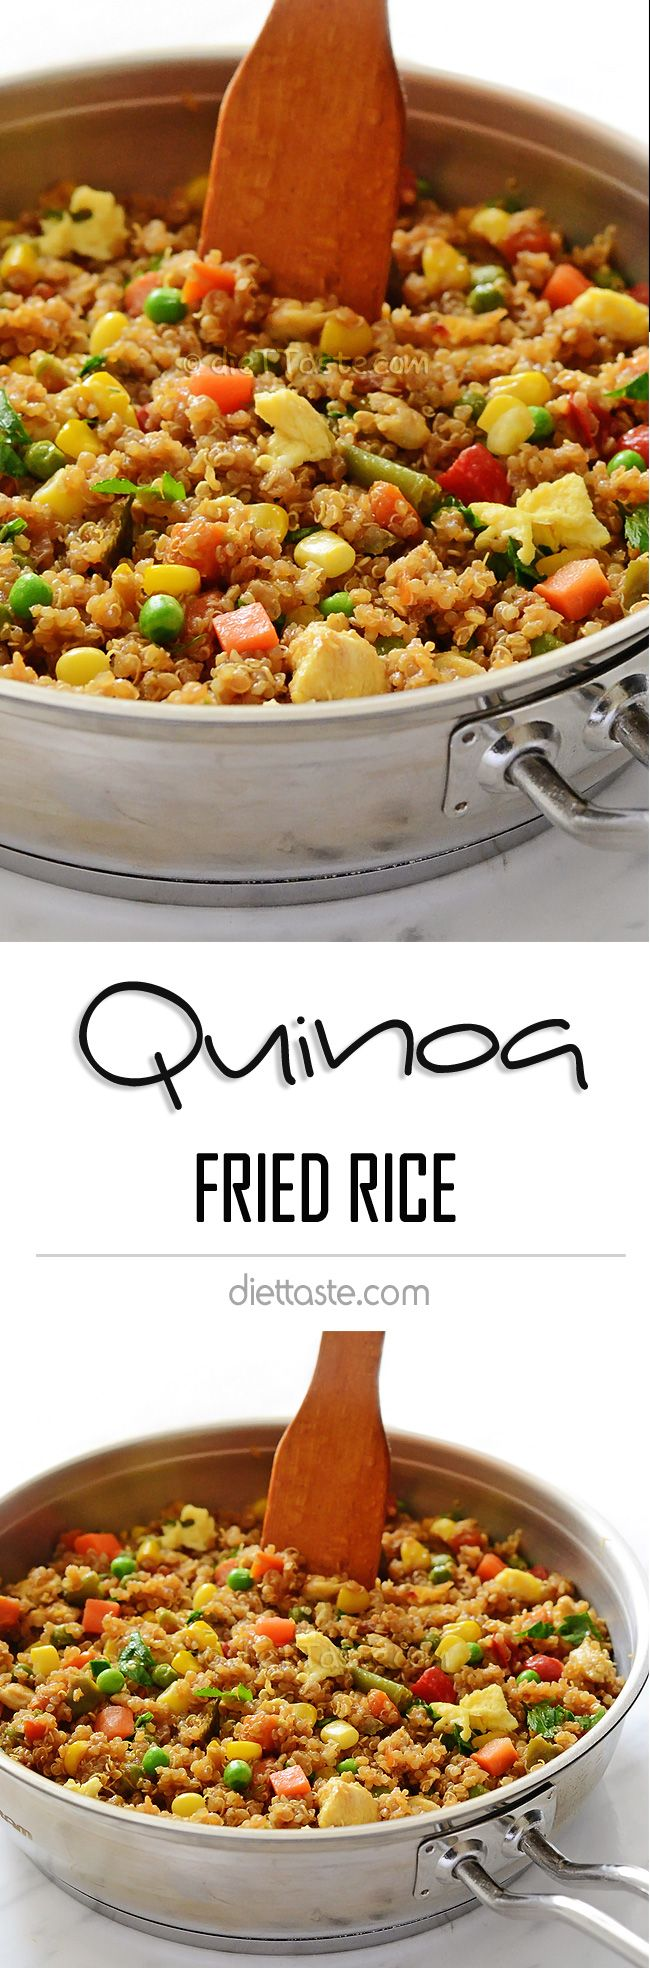 Quinoa Fried Rice - if you like regular fried rice, you will like this low-carb, recipe, too -